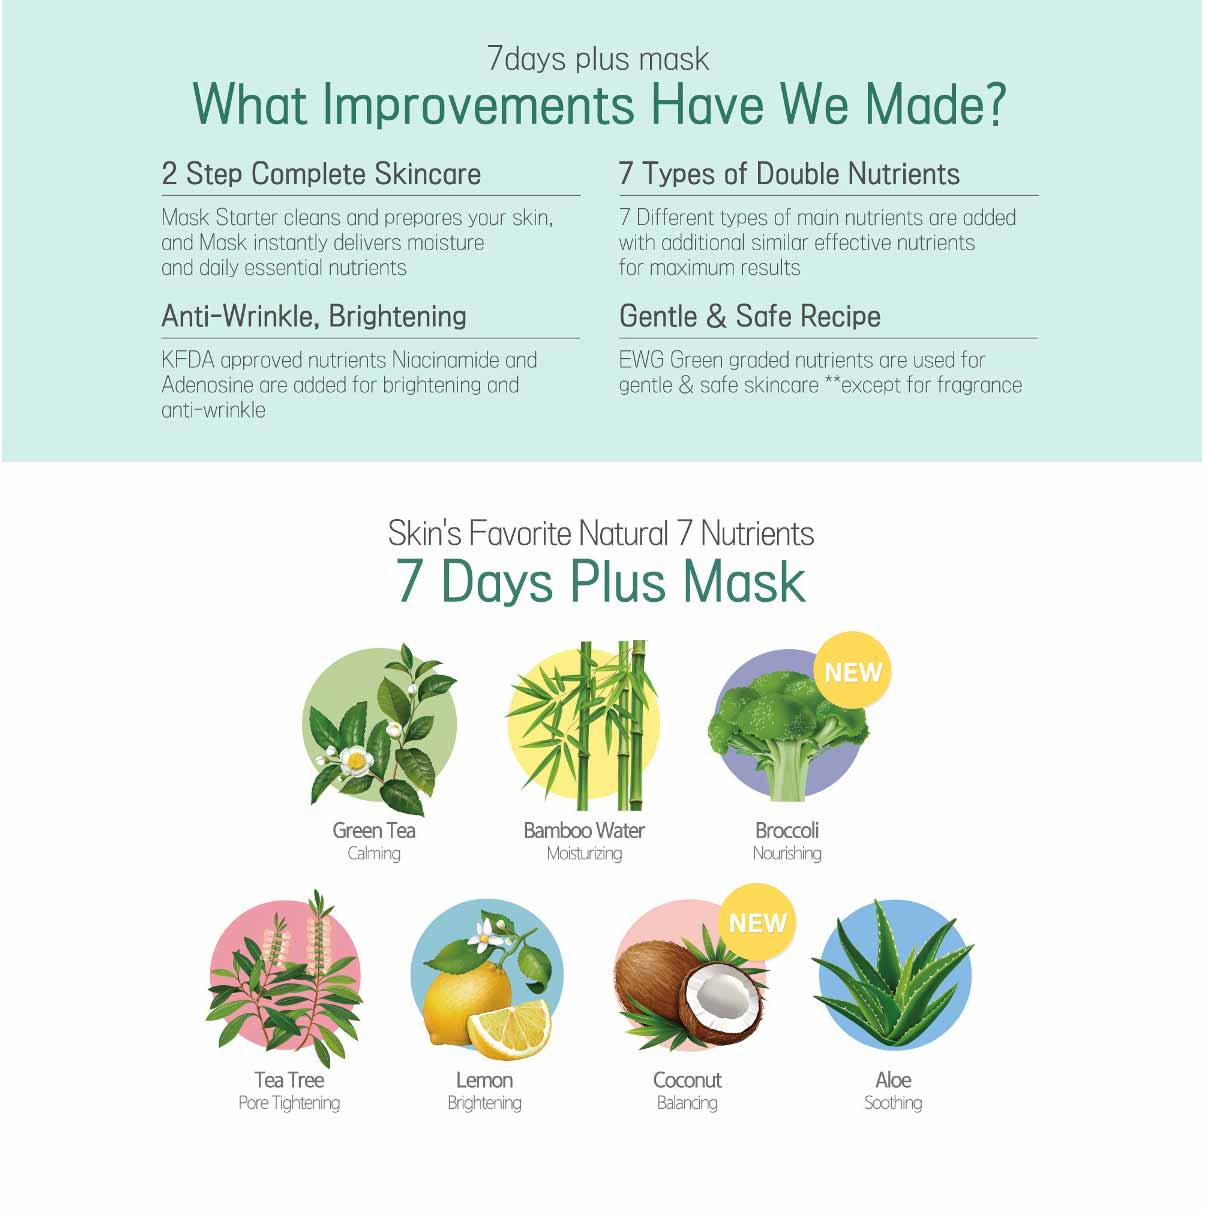 Mặt Nạ Ariul 7 Days Plus Mask - 1